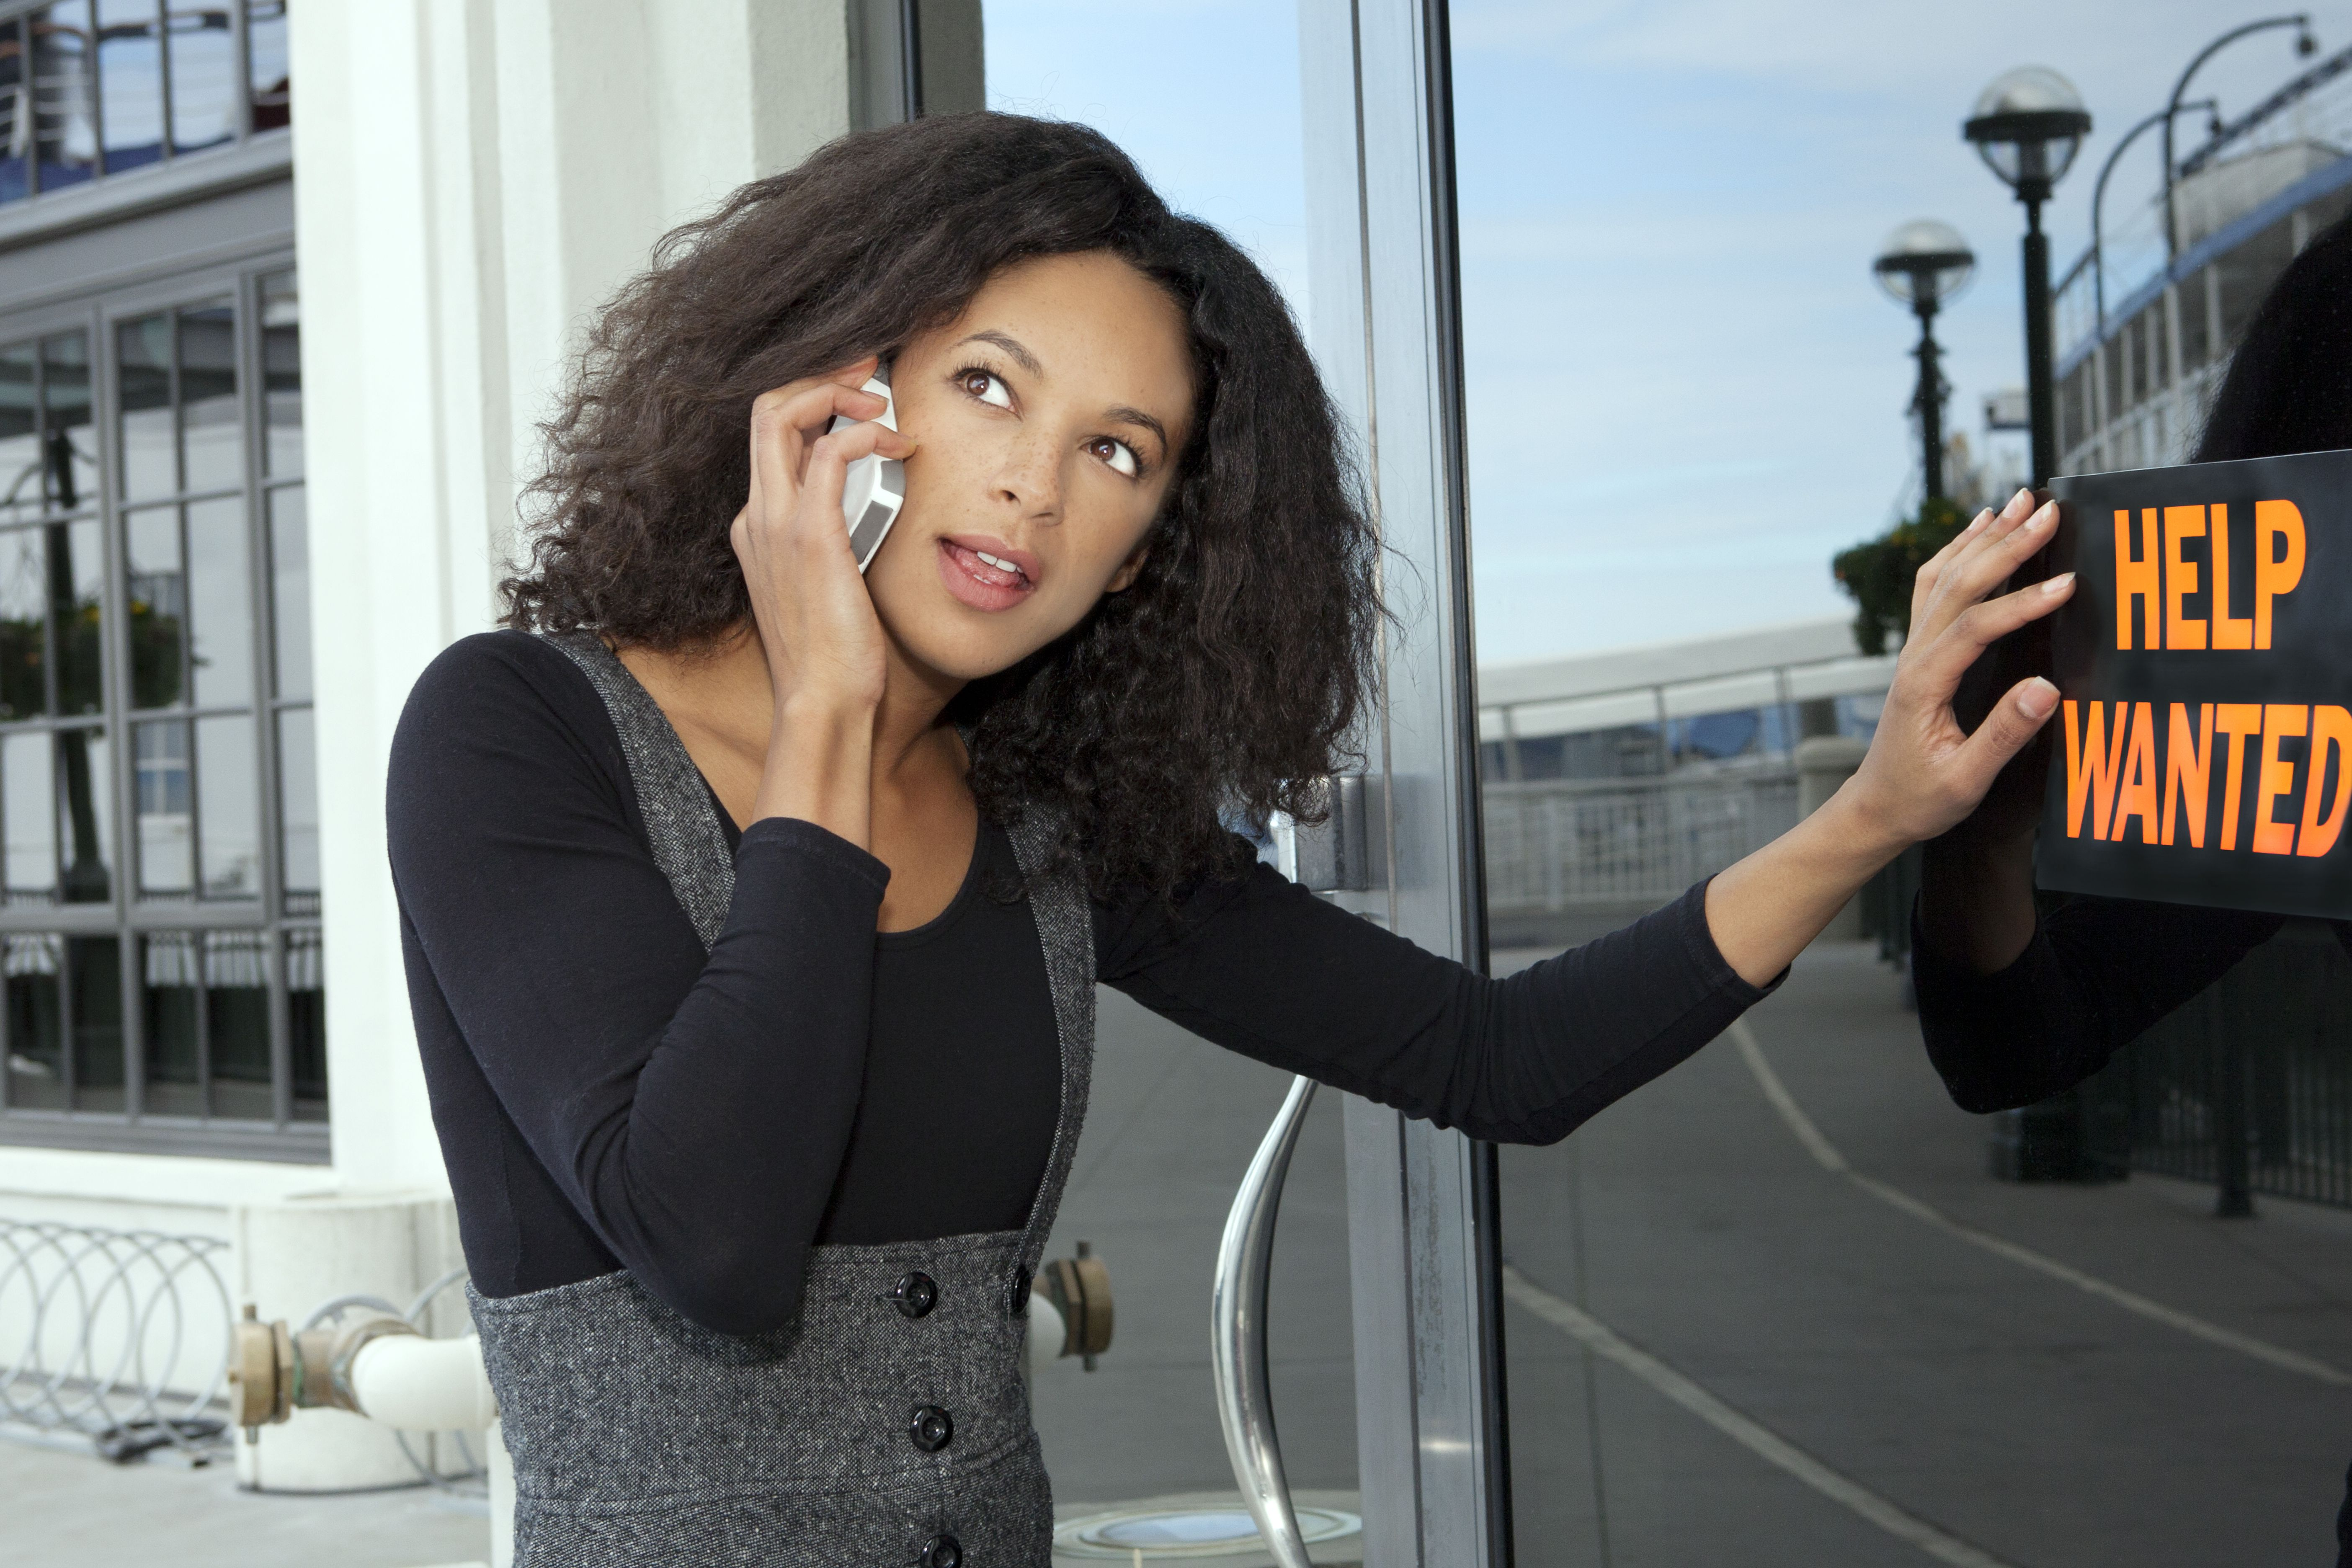 Young woman using a smartphone